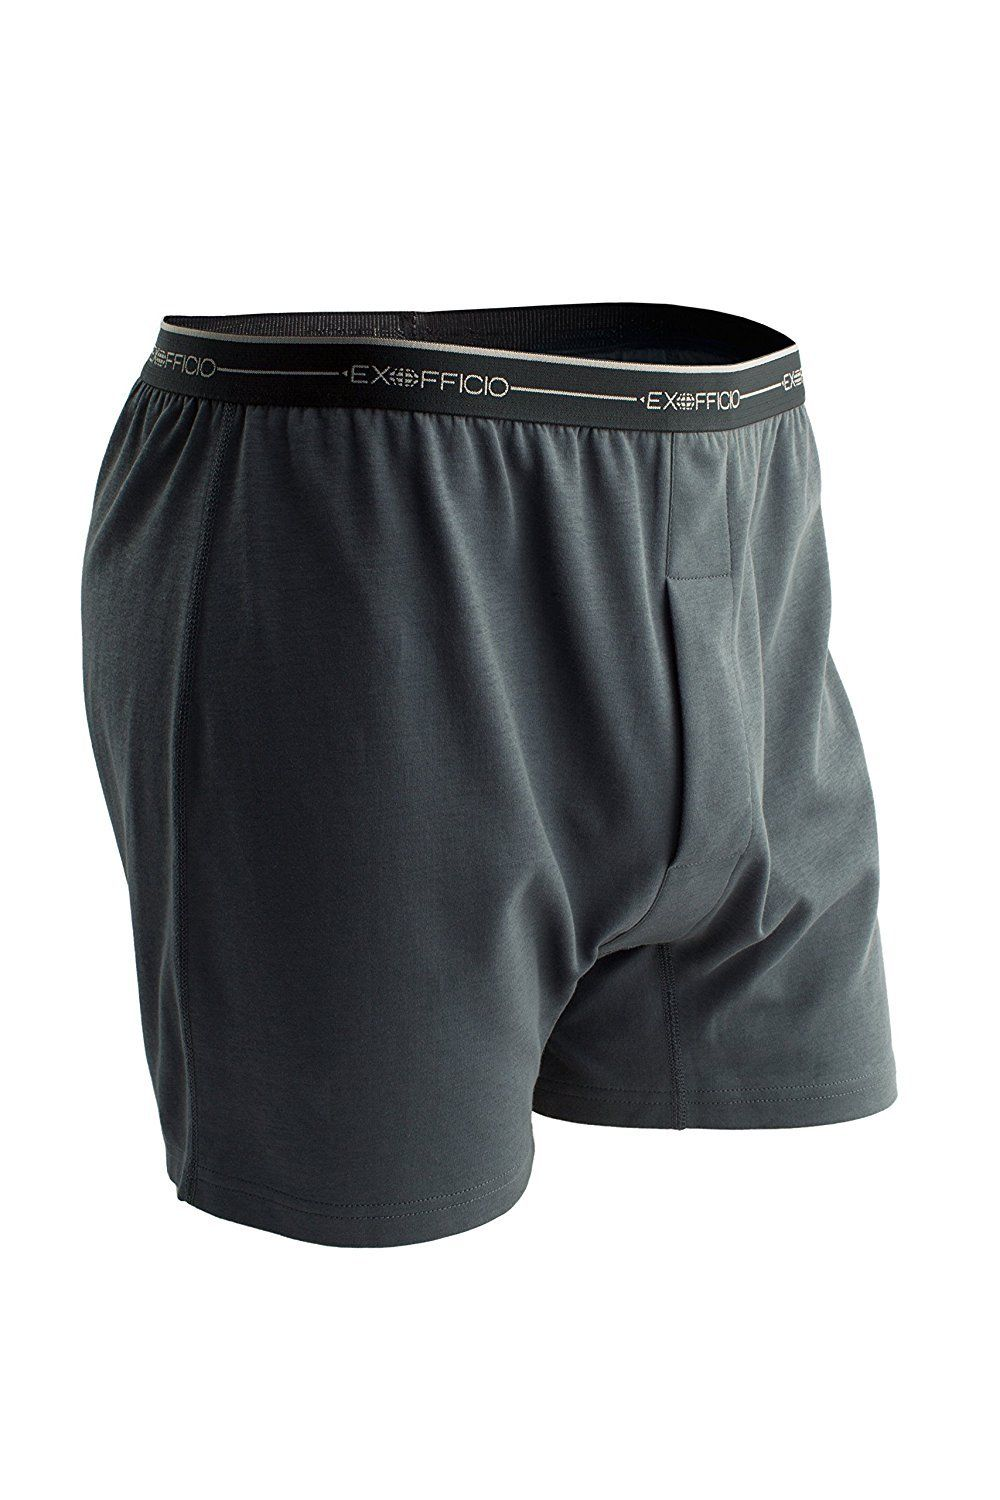 ExOfficio Men's Sol Cool Boxer 1241-2894-Medium-Carbon by ExOfficio